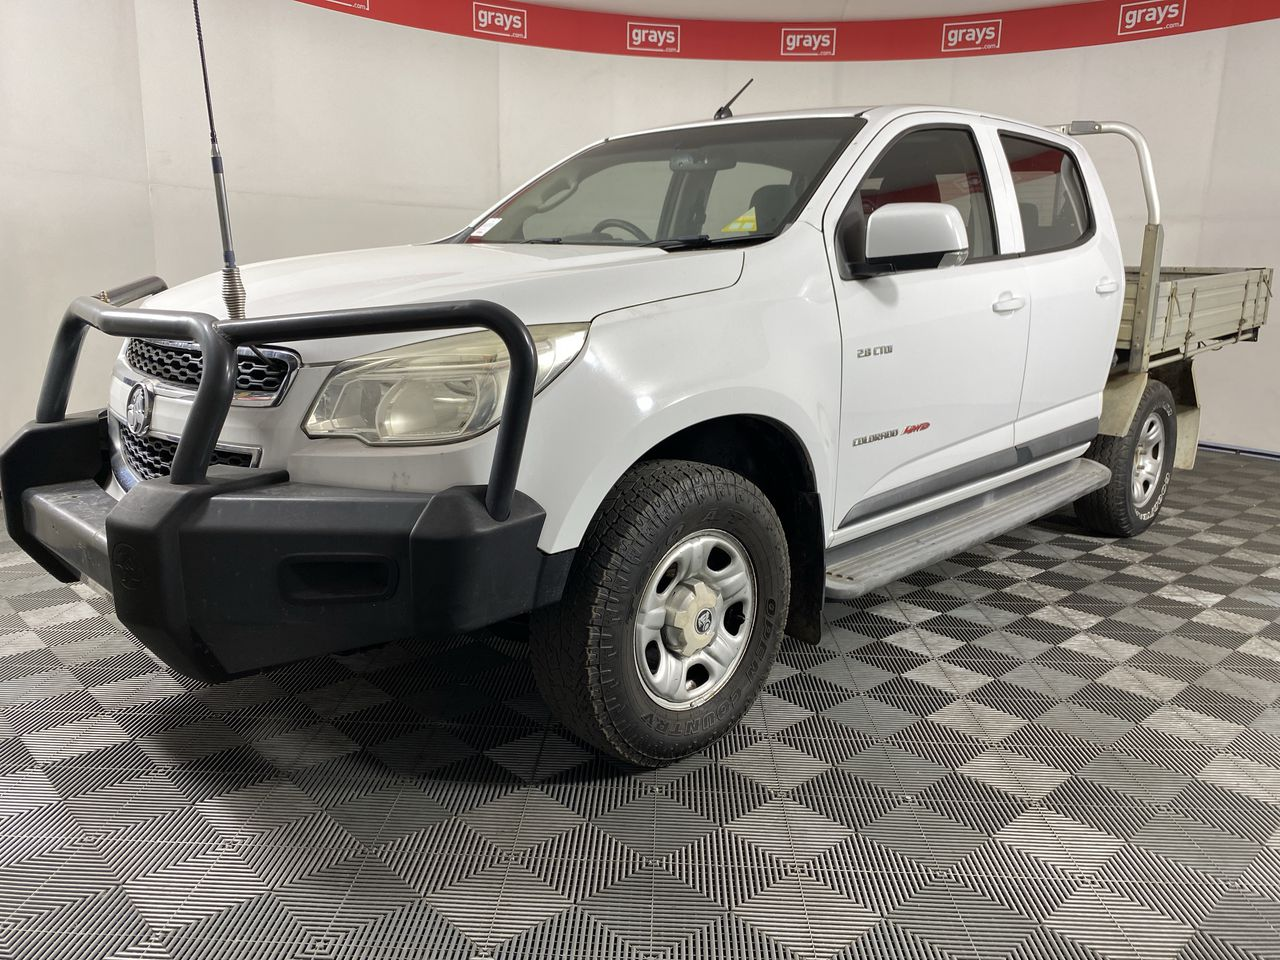 2012 Holden Colorado 4X4 LX RG Turbo Diesel Automatic Crew Cab Chassis